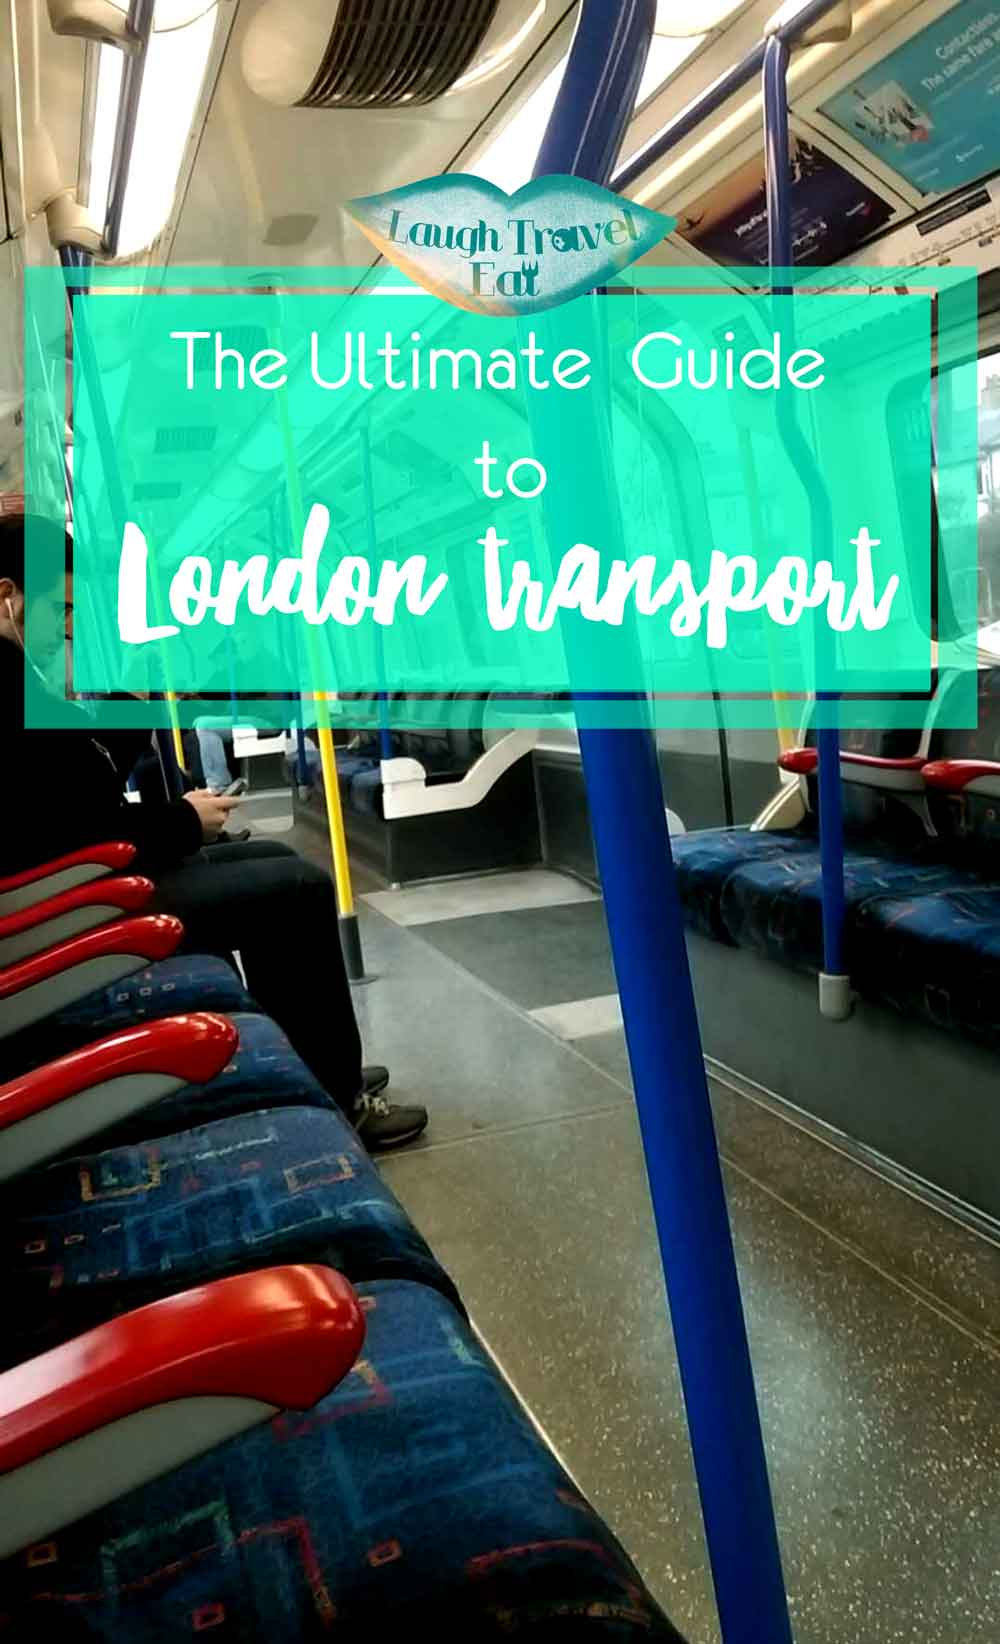 The Ultimate Guide to London Transport | Laugh Travel Eat